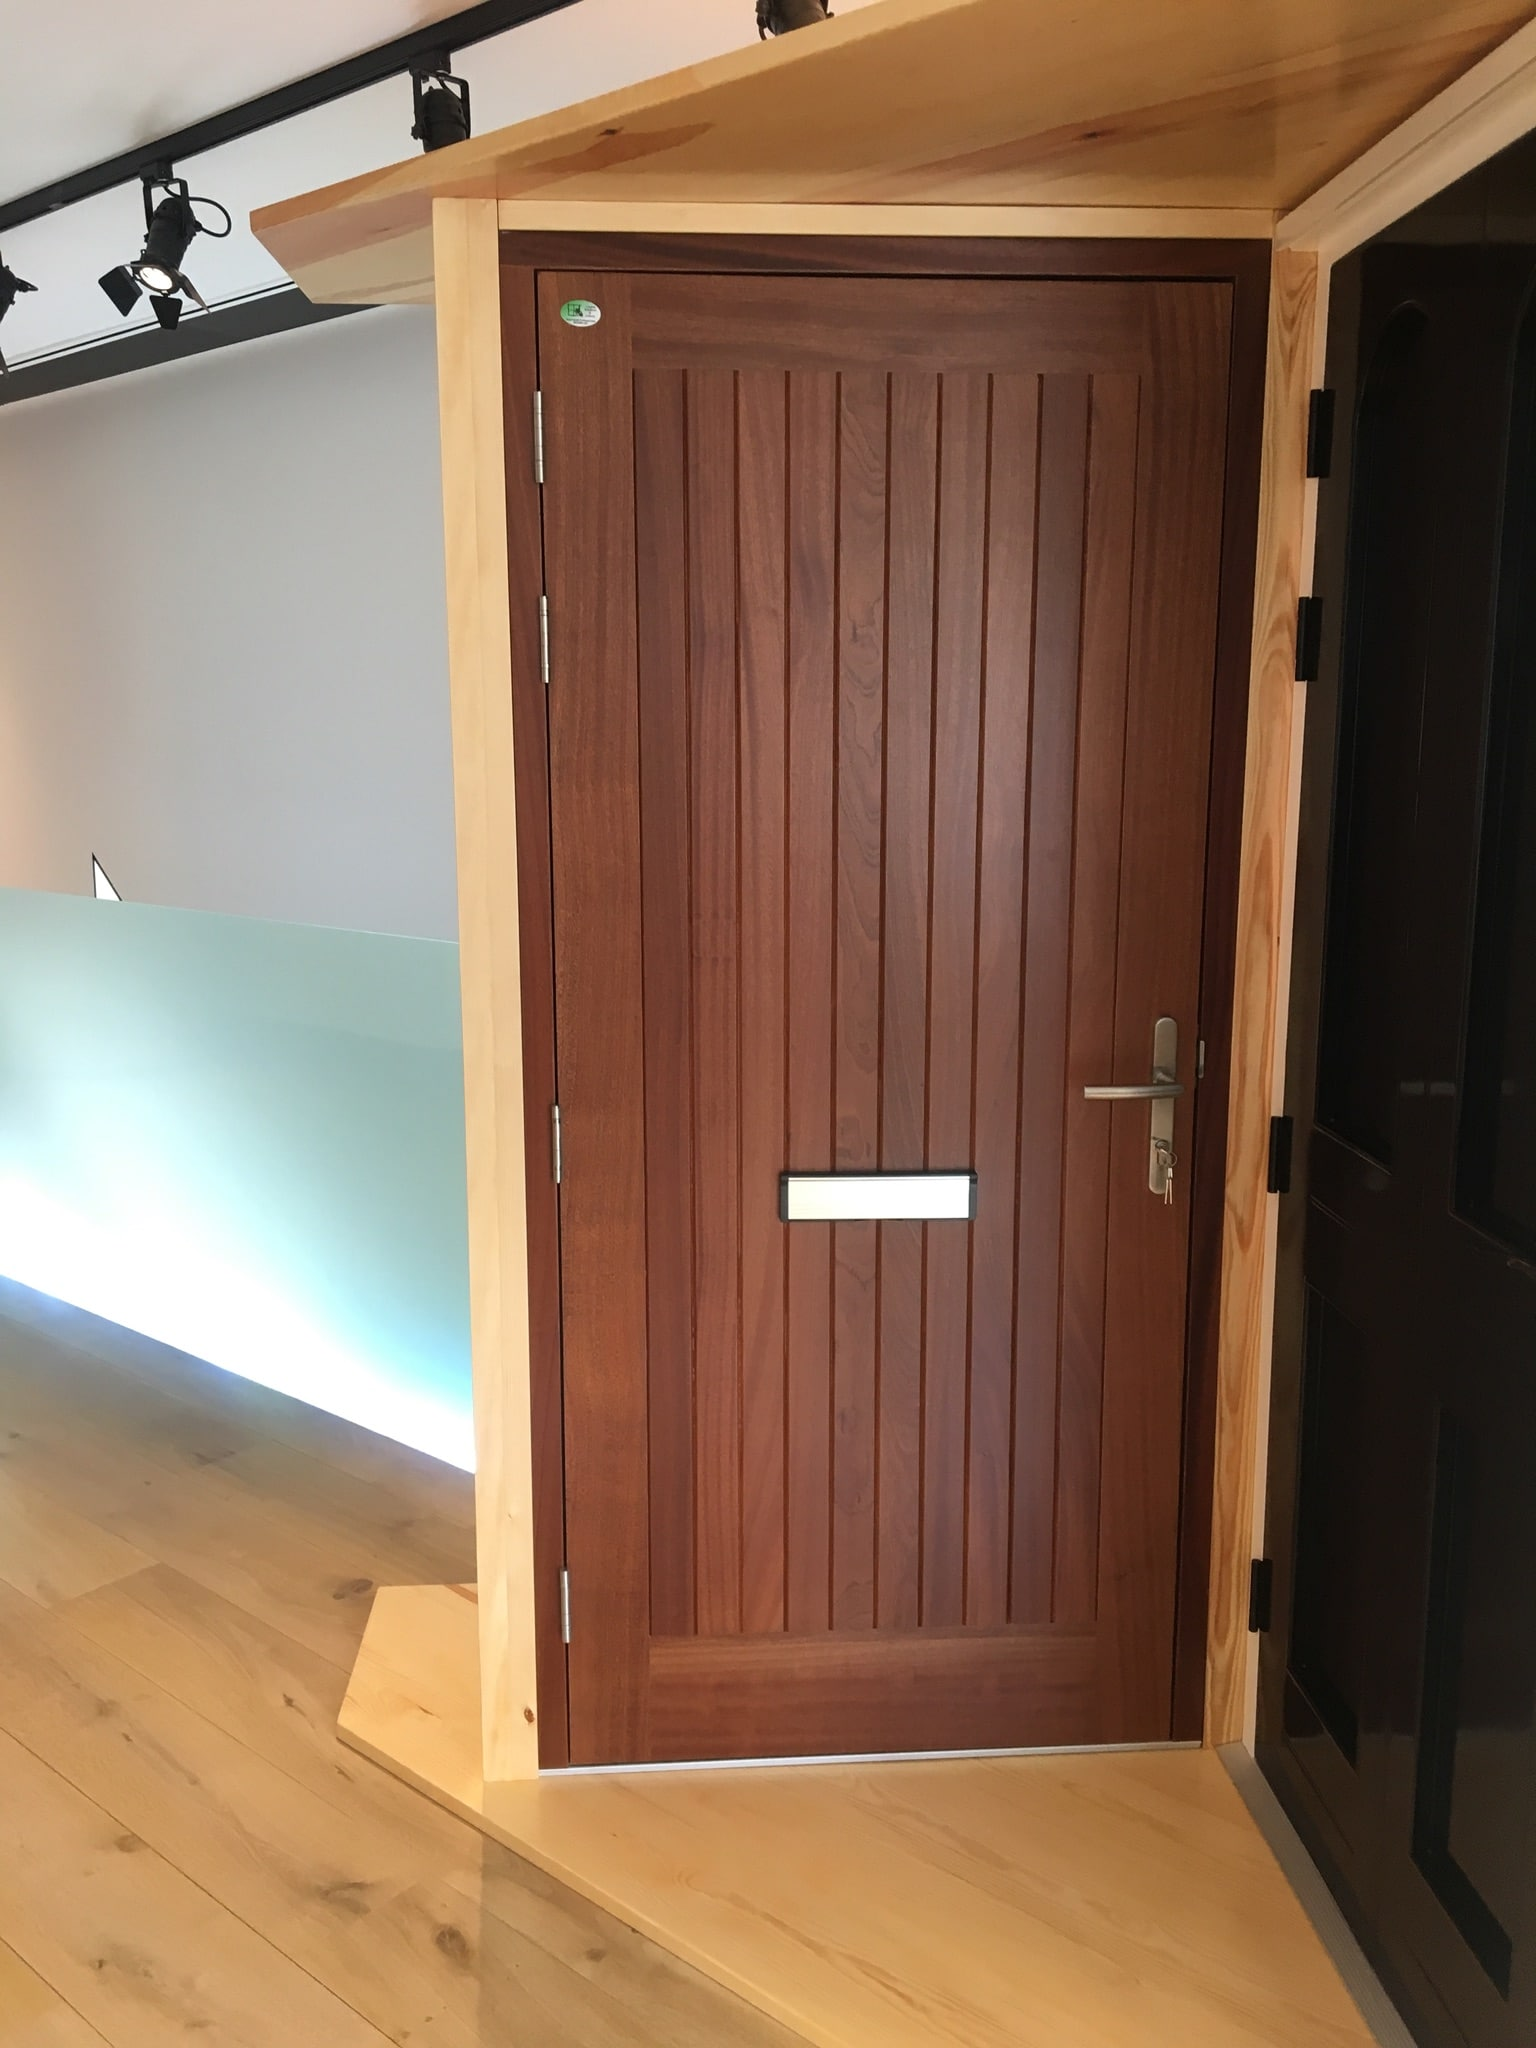 Hardwood flash door, open out, with letter box. Fully factory finished.